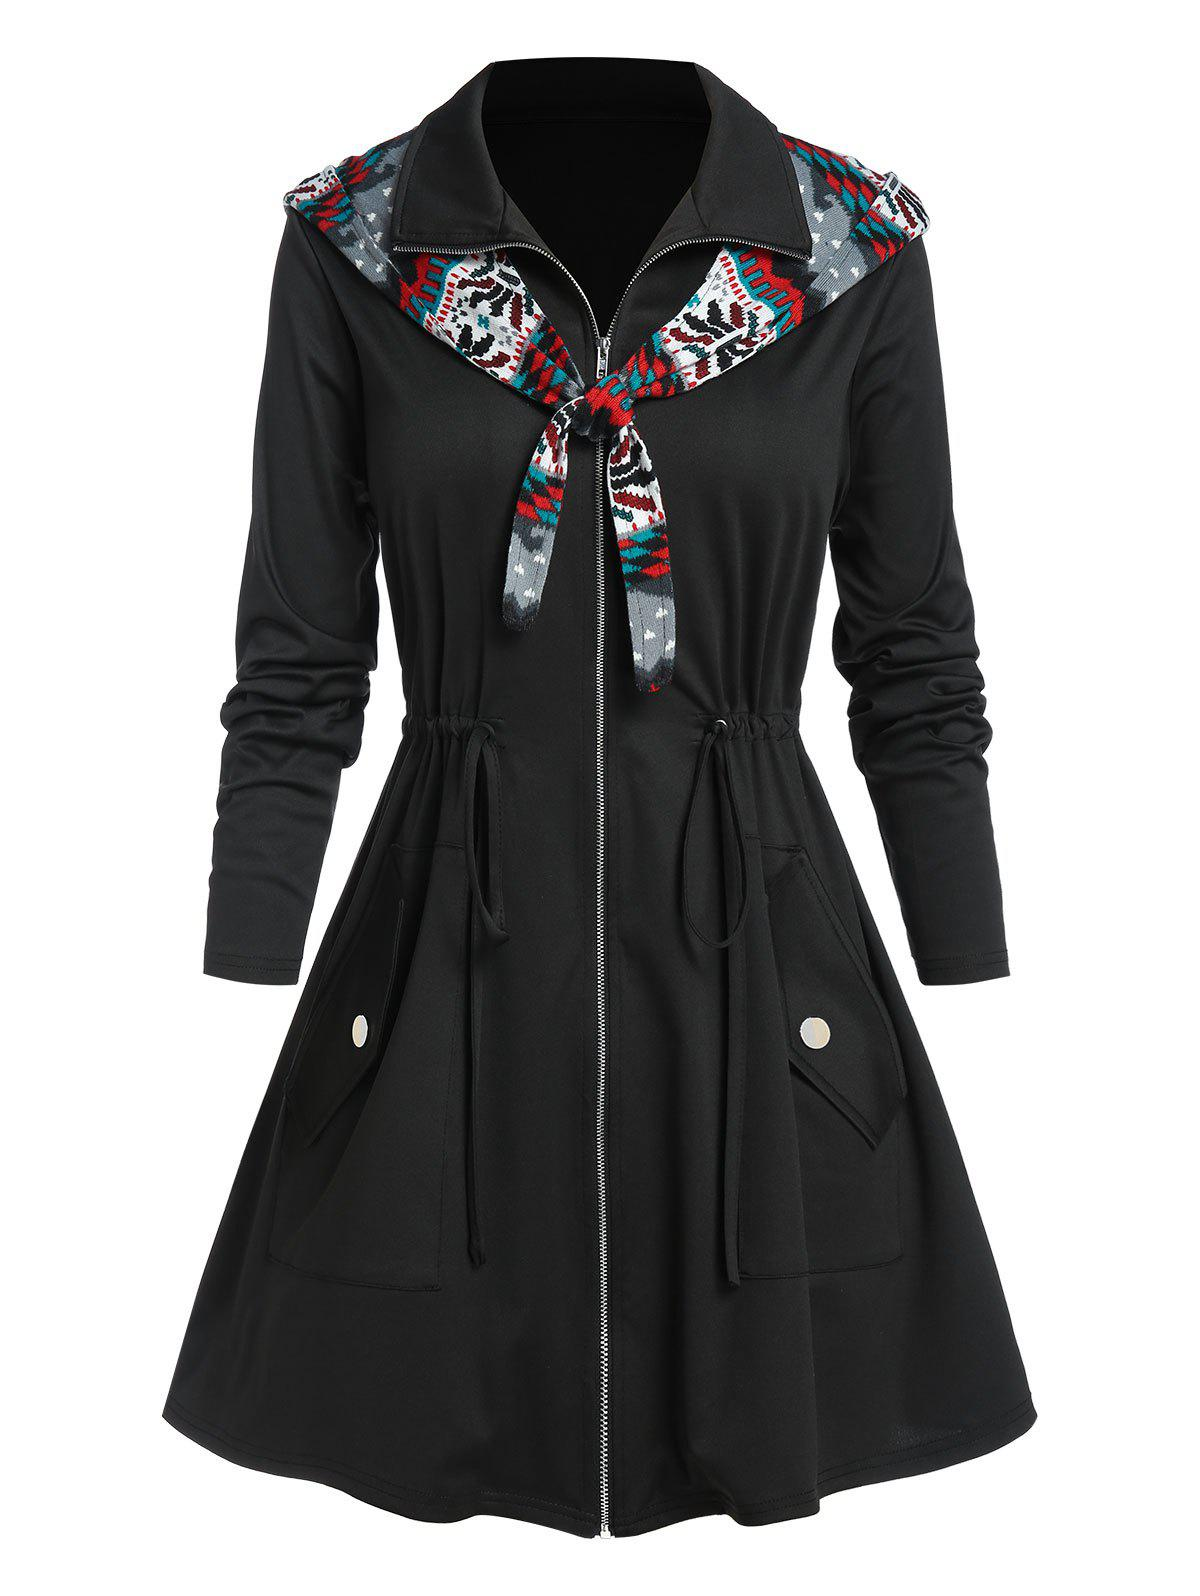 Plus Size Print Hooded Zip Up Drawstring Waist Coat - multicolor A 2X